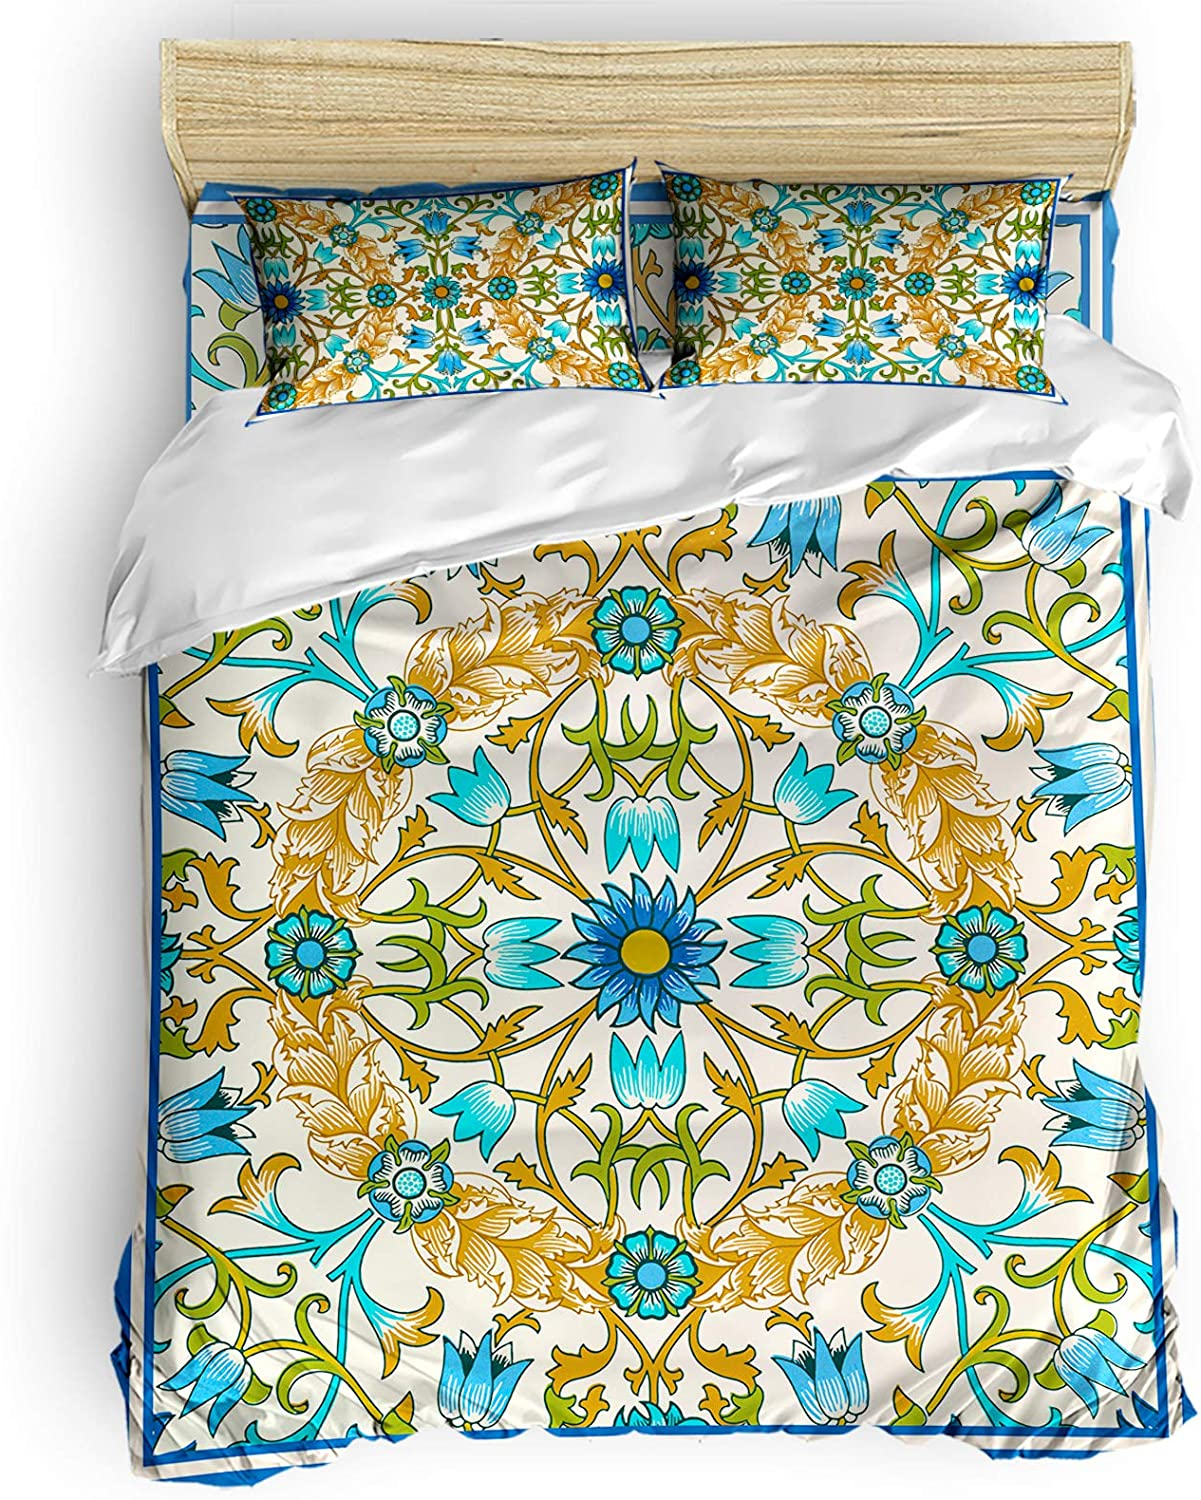 BABE MAPS Floral Duvet Genuine Covers King 4 Many popular brands Pieces Breathable Size Micr